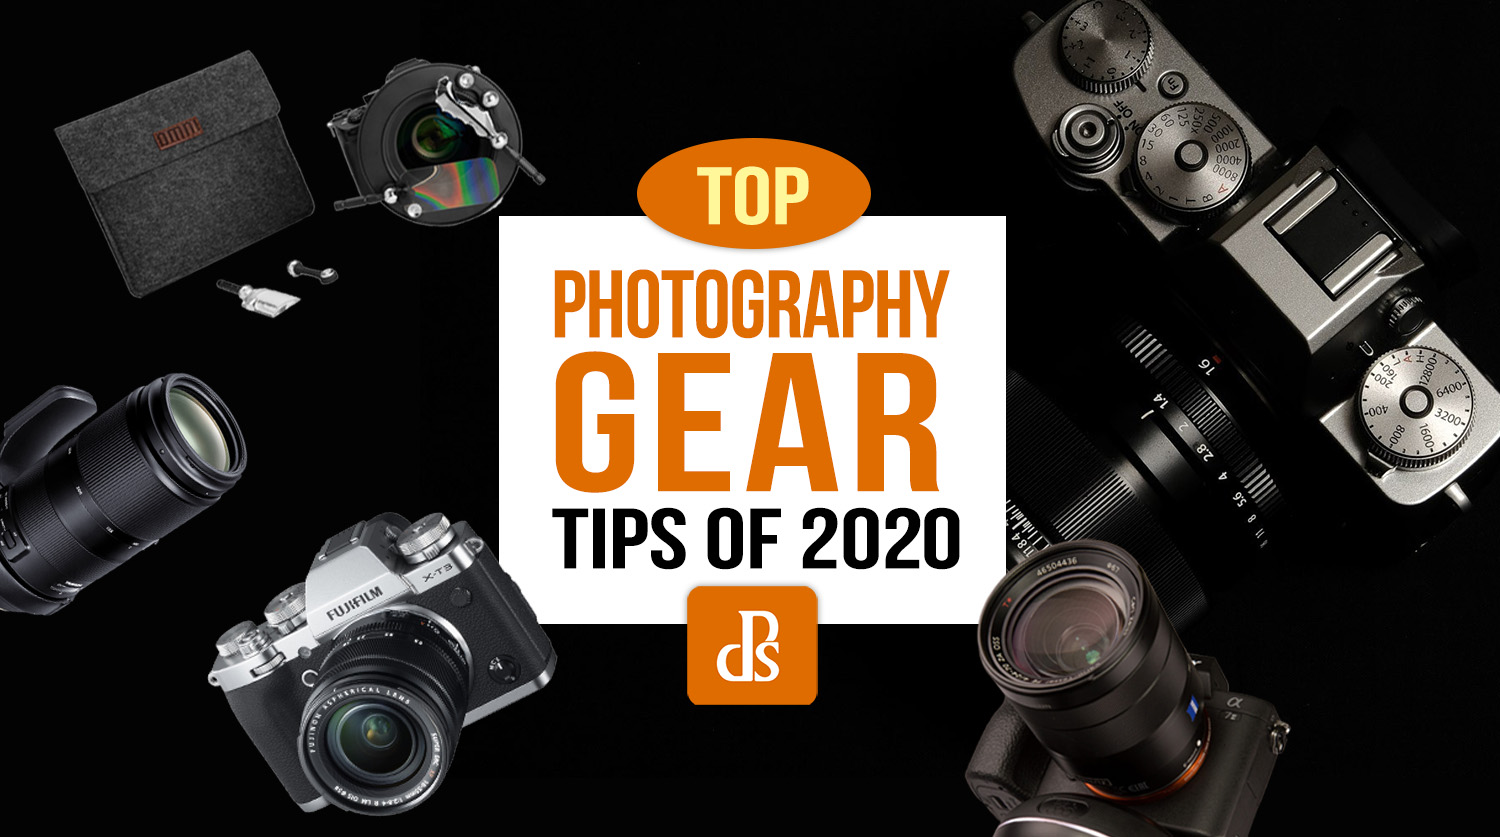 https://i1.wp.com/digital-photography-school.com/wp-content/uploads/2020/12/dps-top-gear-photography-tips-2020-1.jpg?resize=1500%2C837&ssl=1